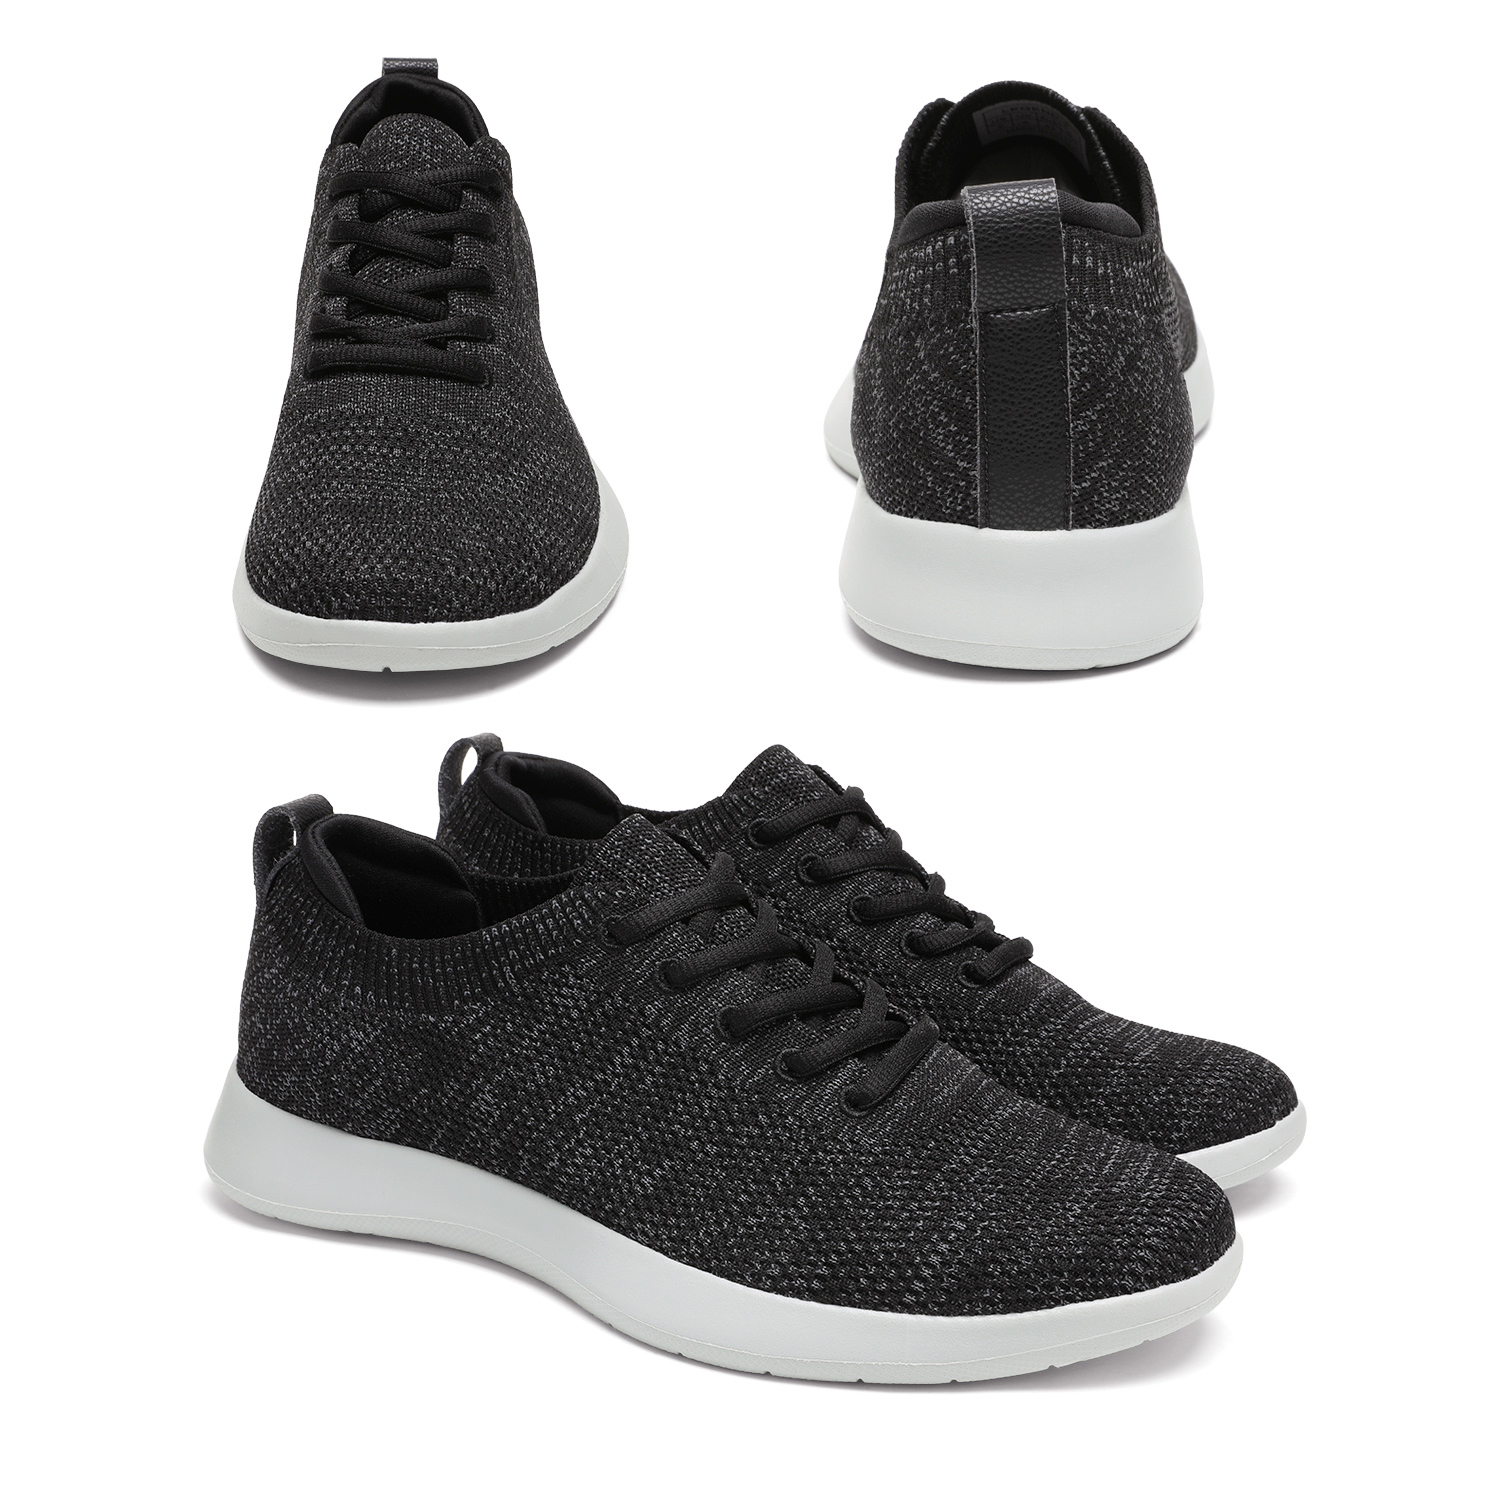 thumbnail 13 - Bruno Marc Mens Walking Shoes Breathable Fashion Sneaker Casual Shoe Size 6.5-13